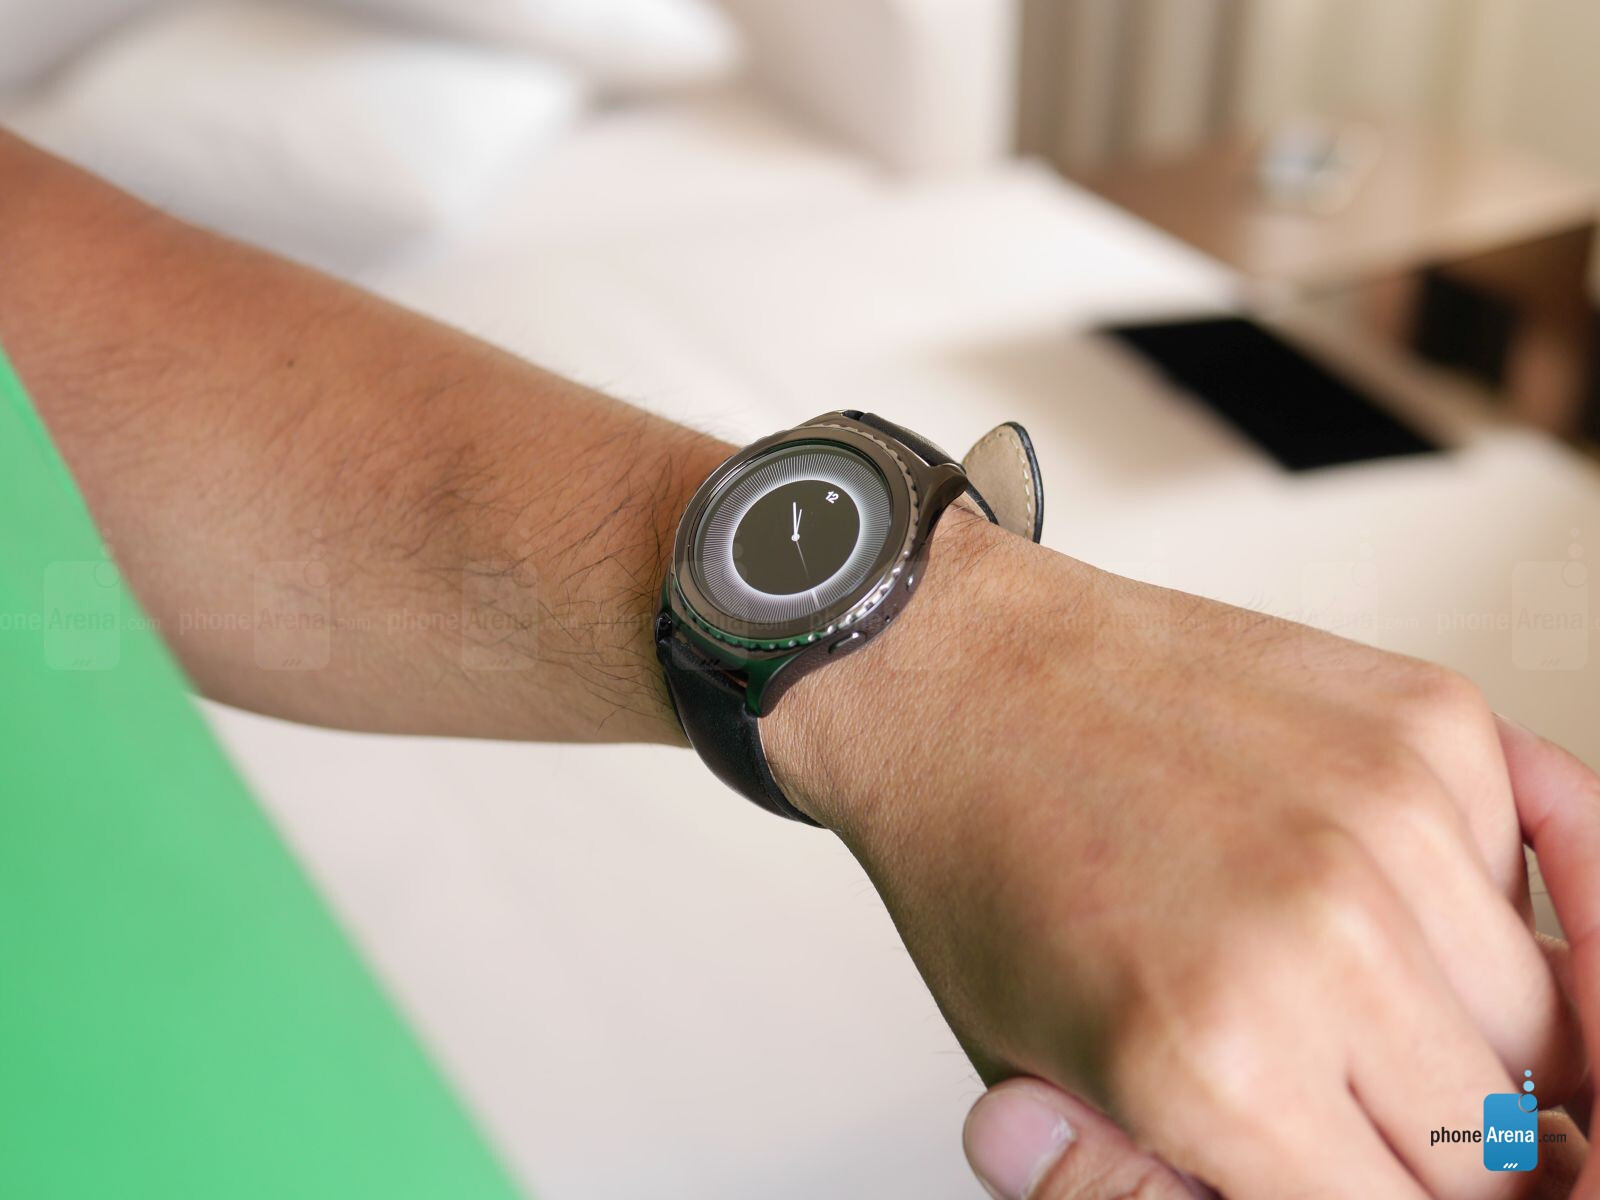 Samsung Gear S2 Classic hands-on   PhoneArena reviews